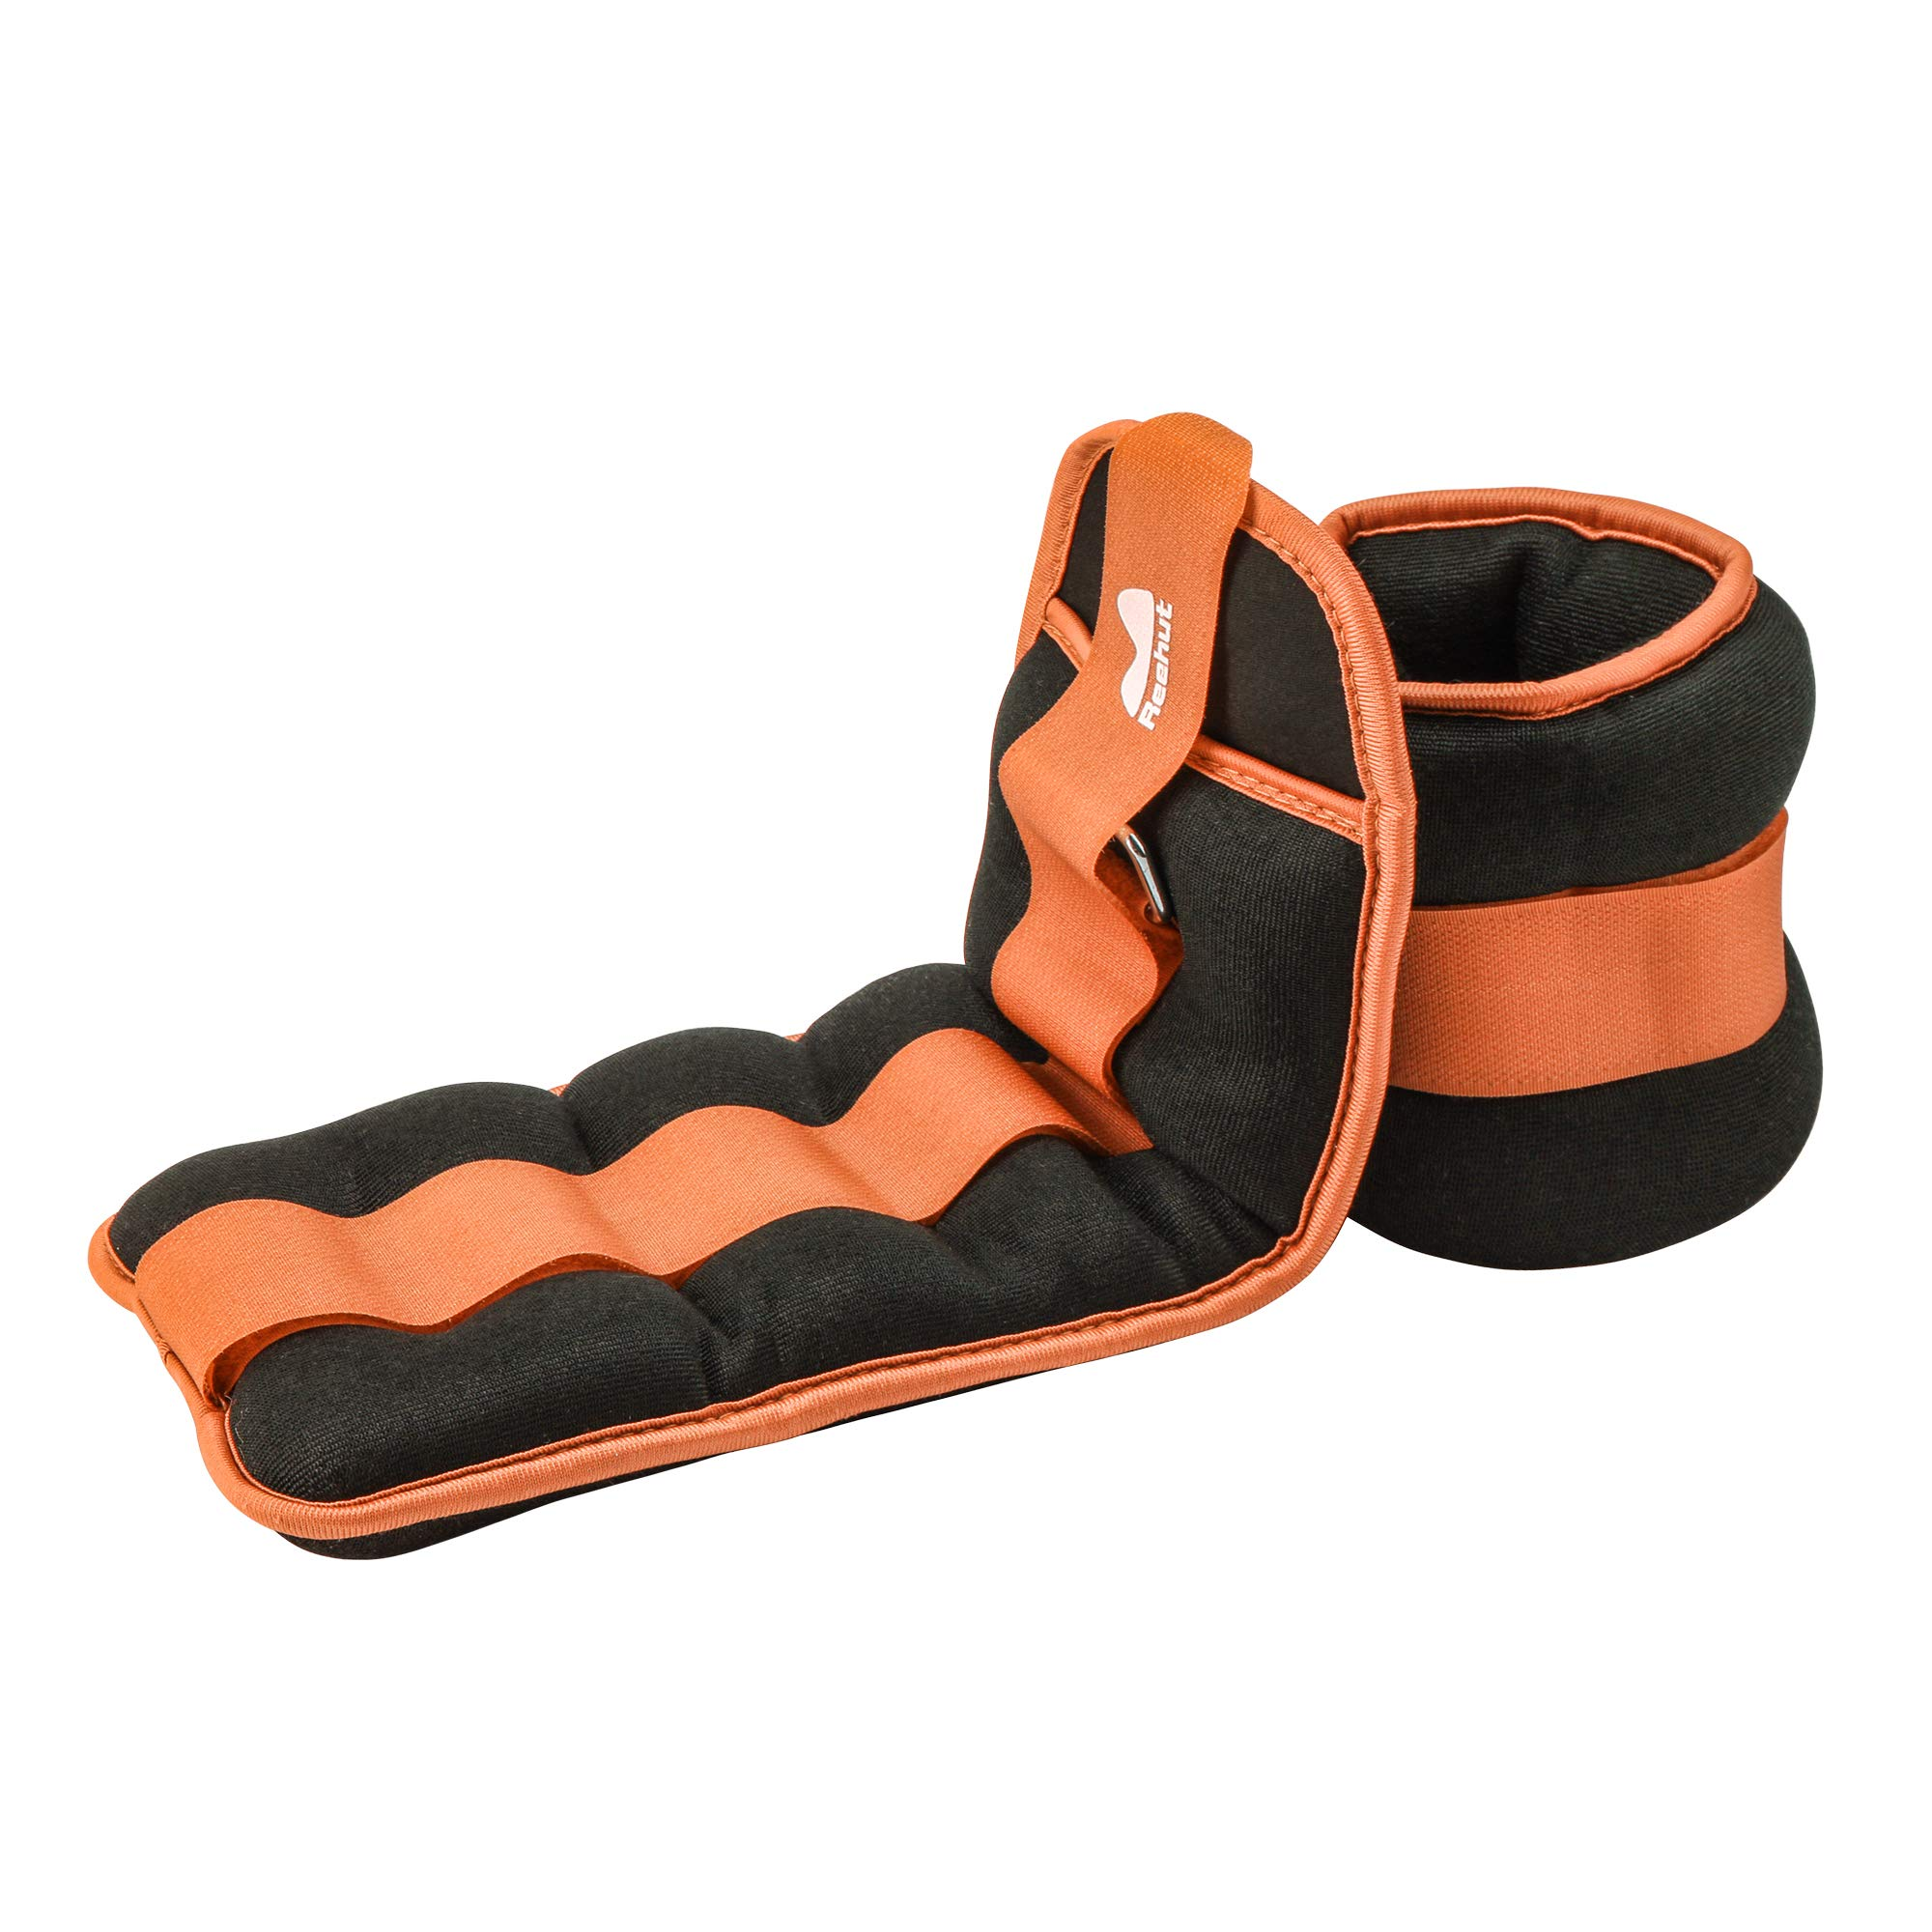 REEHUT Ankle Weights, Durable Wrist Weight (1 Pair) with Adjustable Strap for Fitness, Exercise, Walking, Jogging, Gymnastics, Aerobics, Gym - Orange - 6 lbs Pair (3 lbs Each)